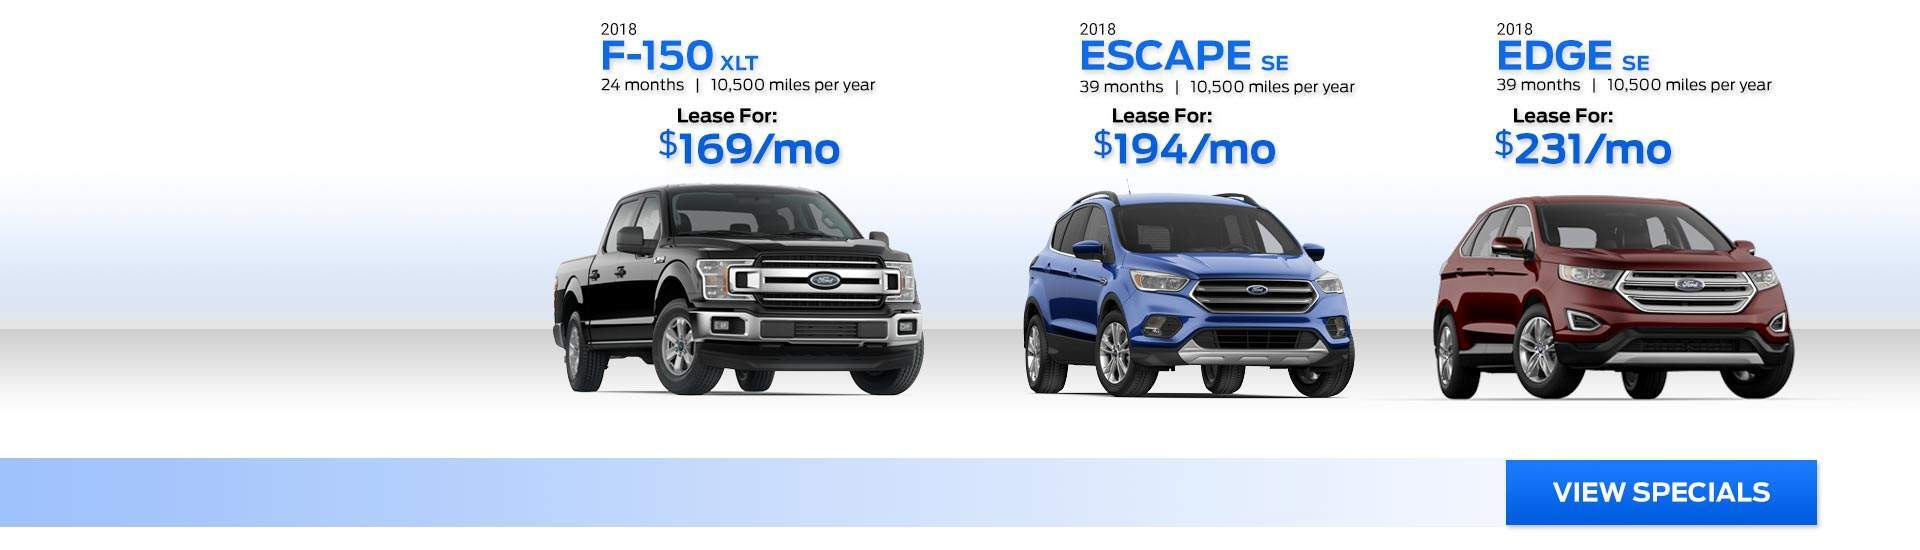 Feb. 2018 Lease Specials 1